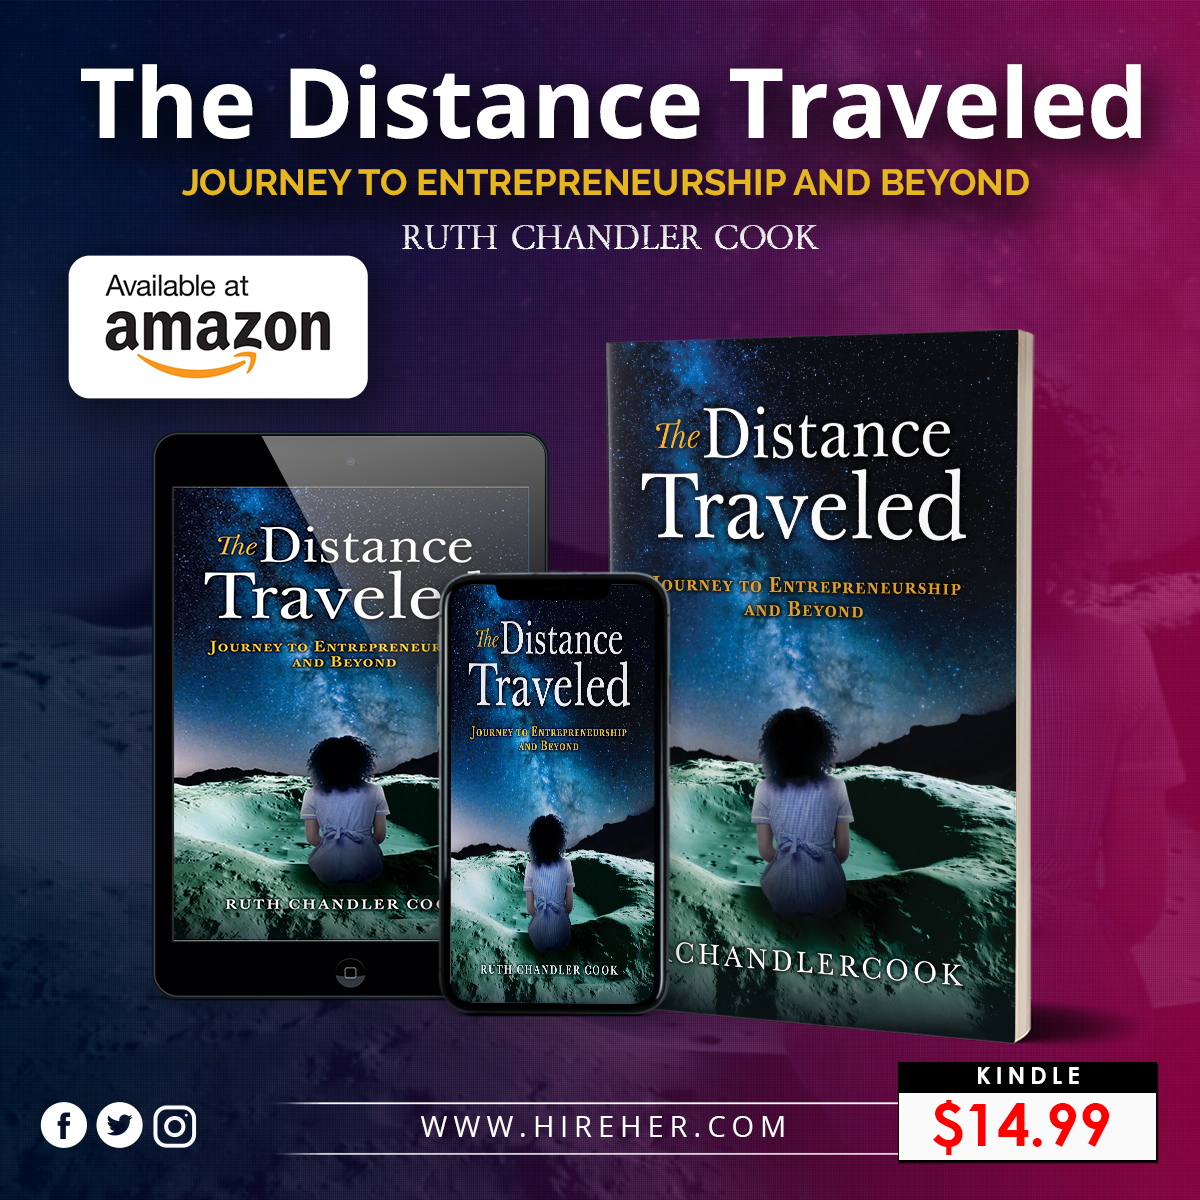 The Distanced Traveled by Ruth Chandler Cook